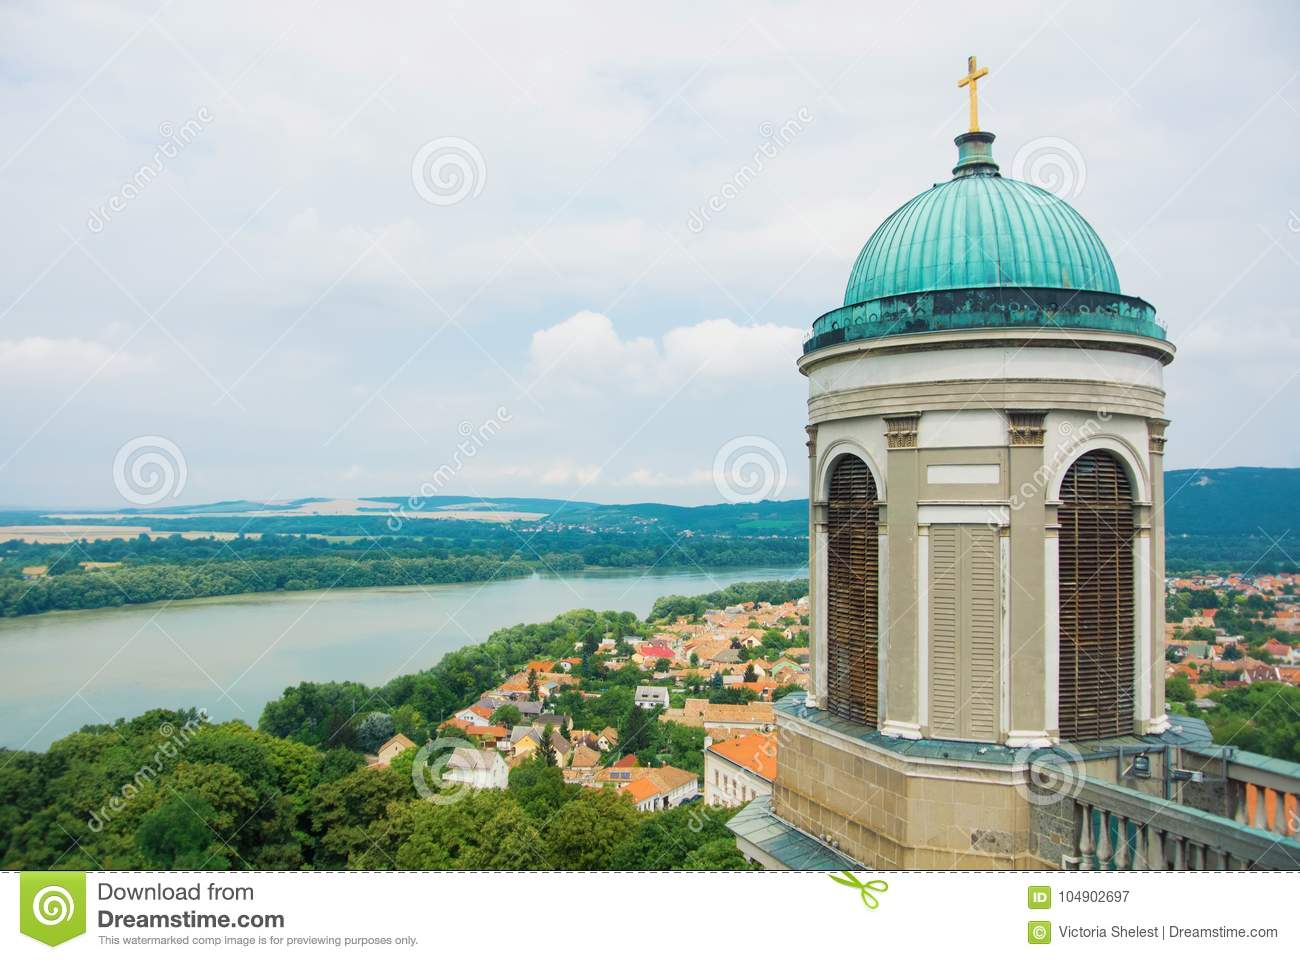 Panoramic aerial view over the roofs of Esztergom town near Budapest, Danube river and a tower of Esztergom Cathedral at the fore